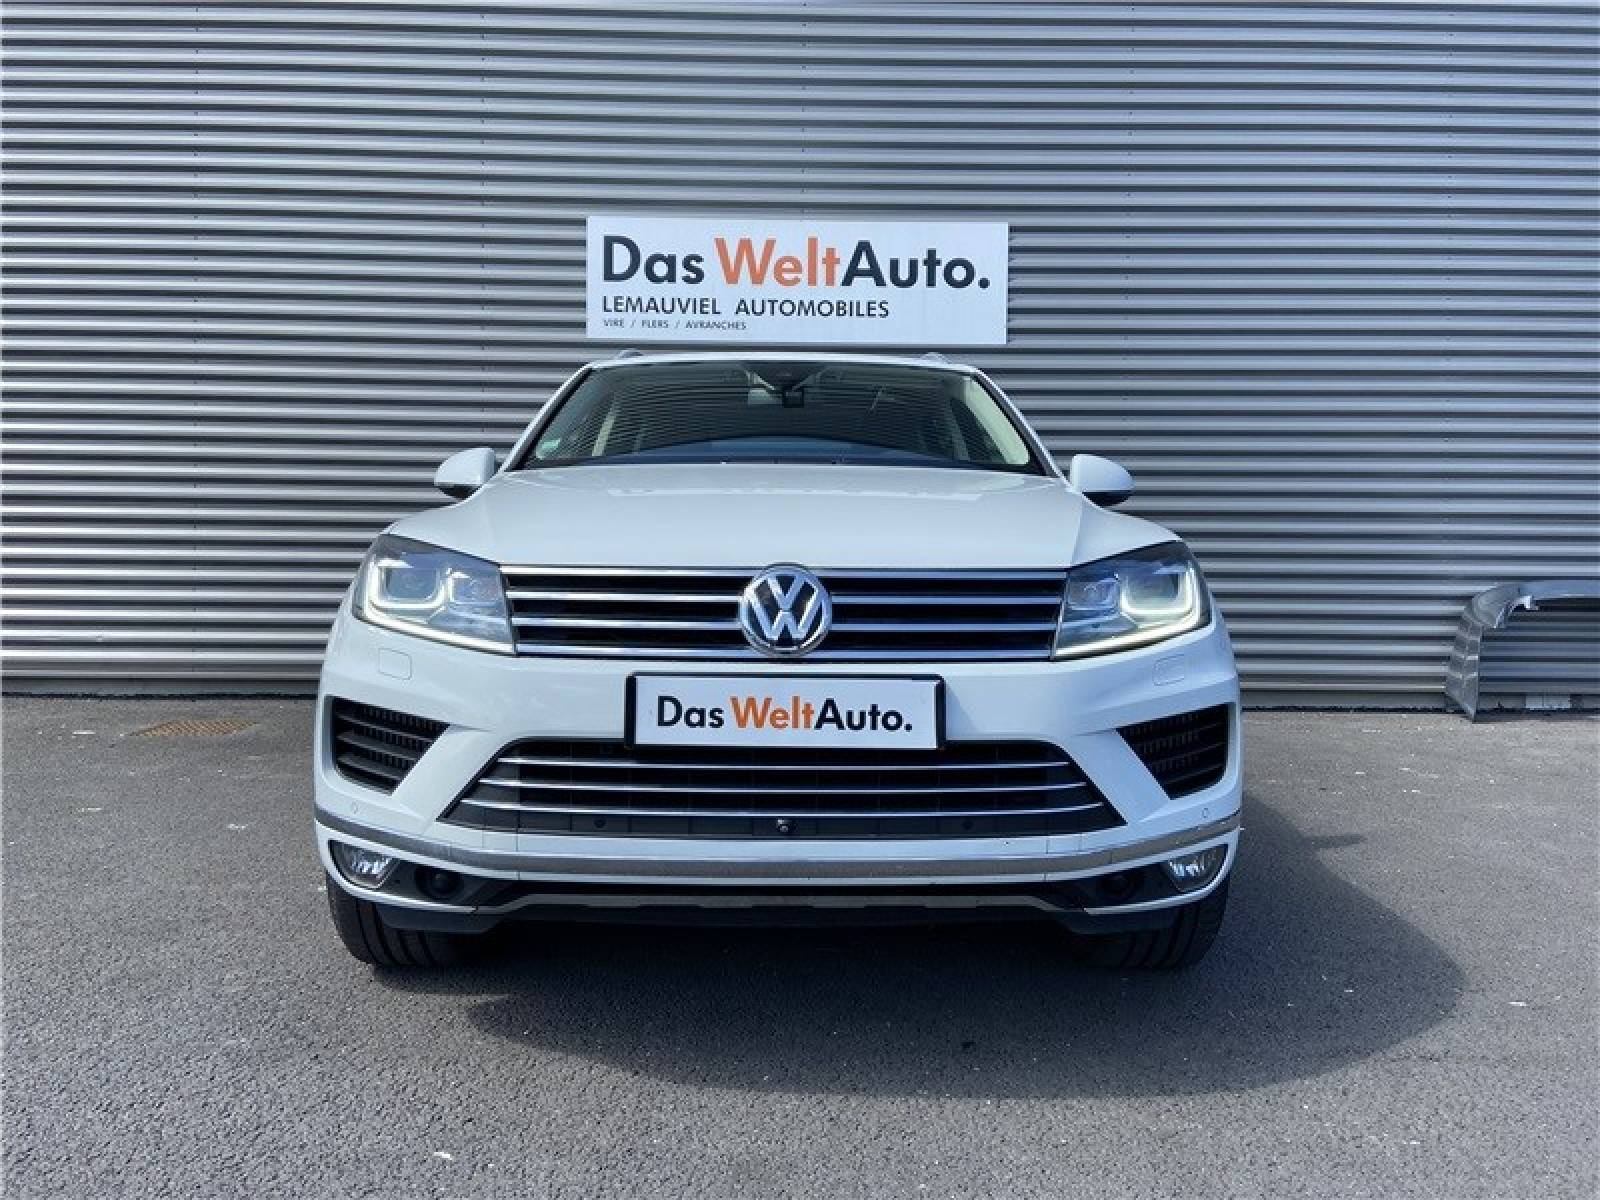 VOLKSWAGEN Touareg 3.0 V6 TDI 262 4Motion BlueMotion Technology - véhicule d'occasion - LEMAUVIEL AUTOMOBILES - Présentation site web V2 - Lemauviel Automobiles - VIRE - 14500 - VIRE - 2